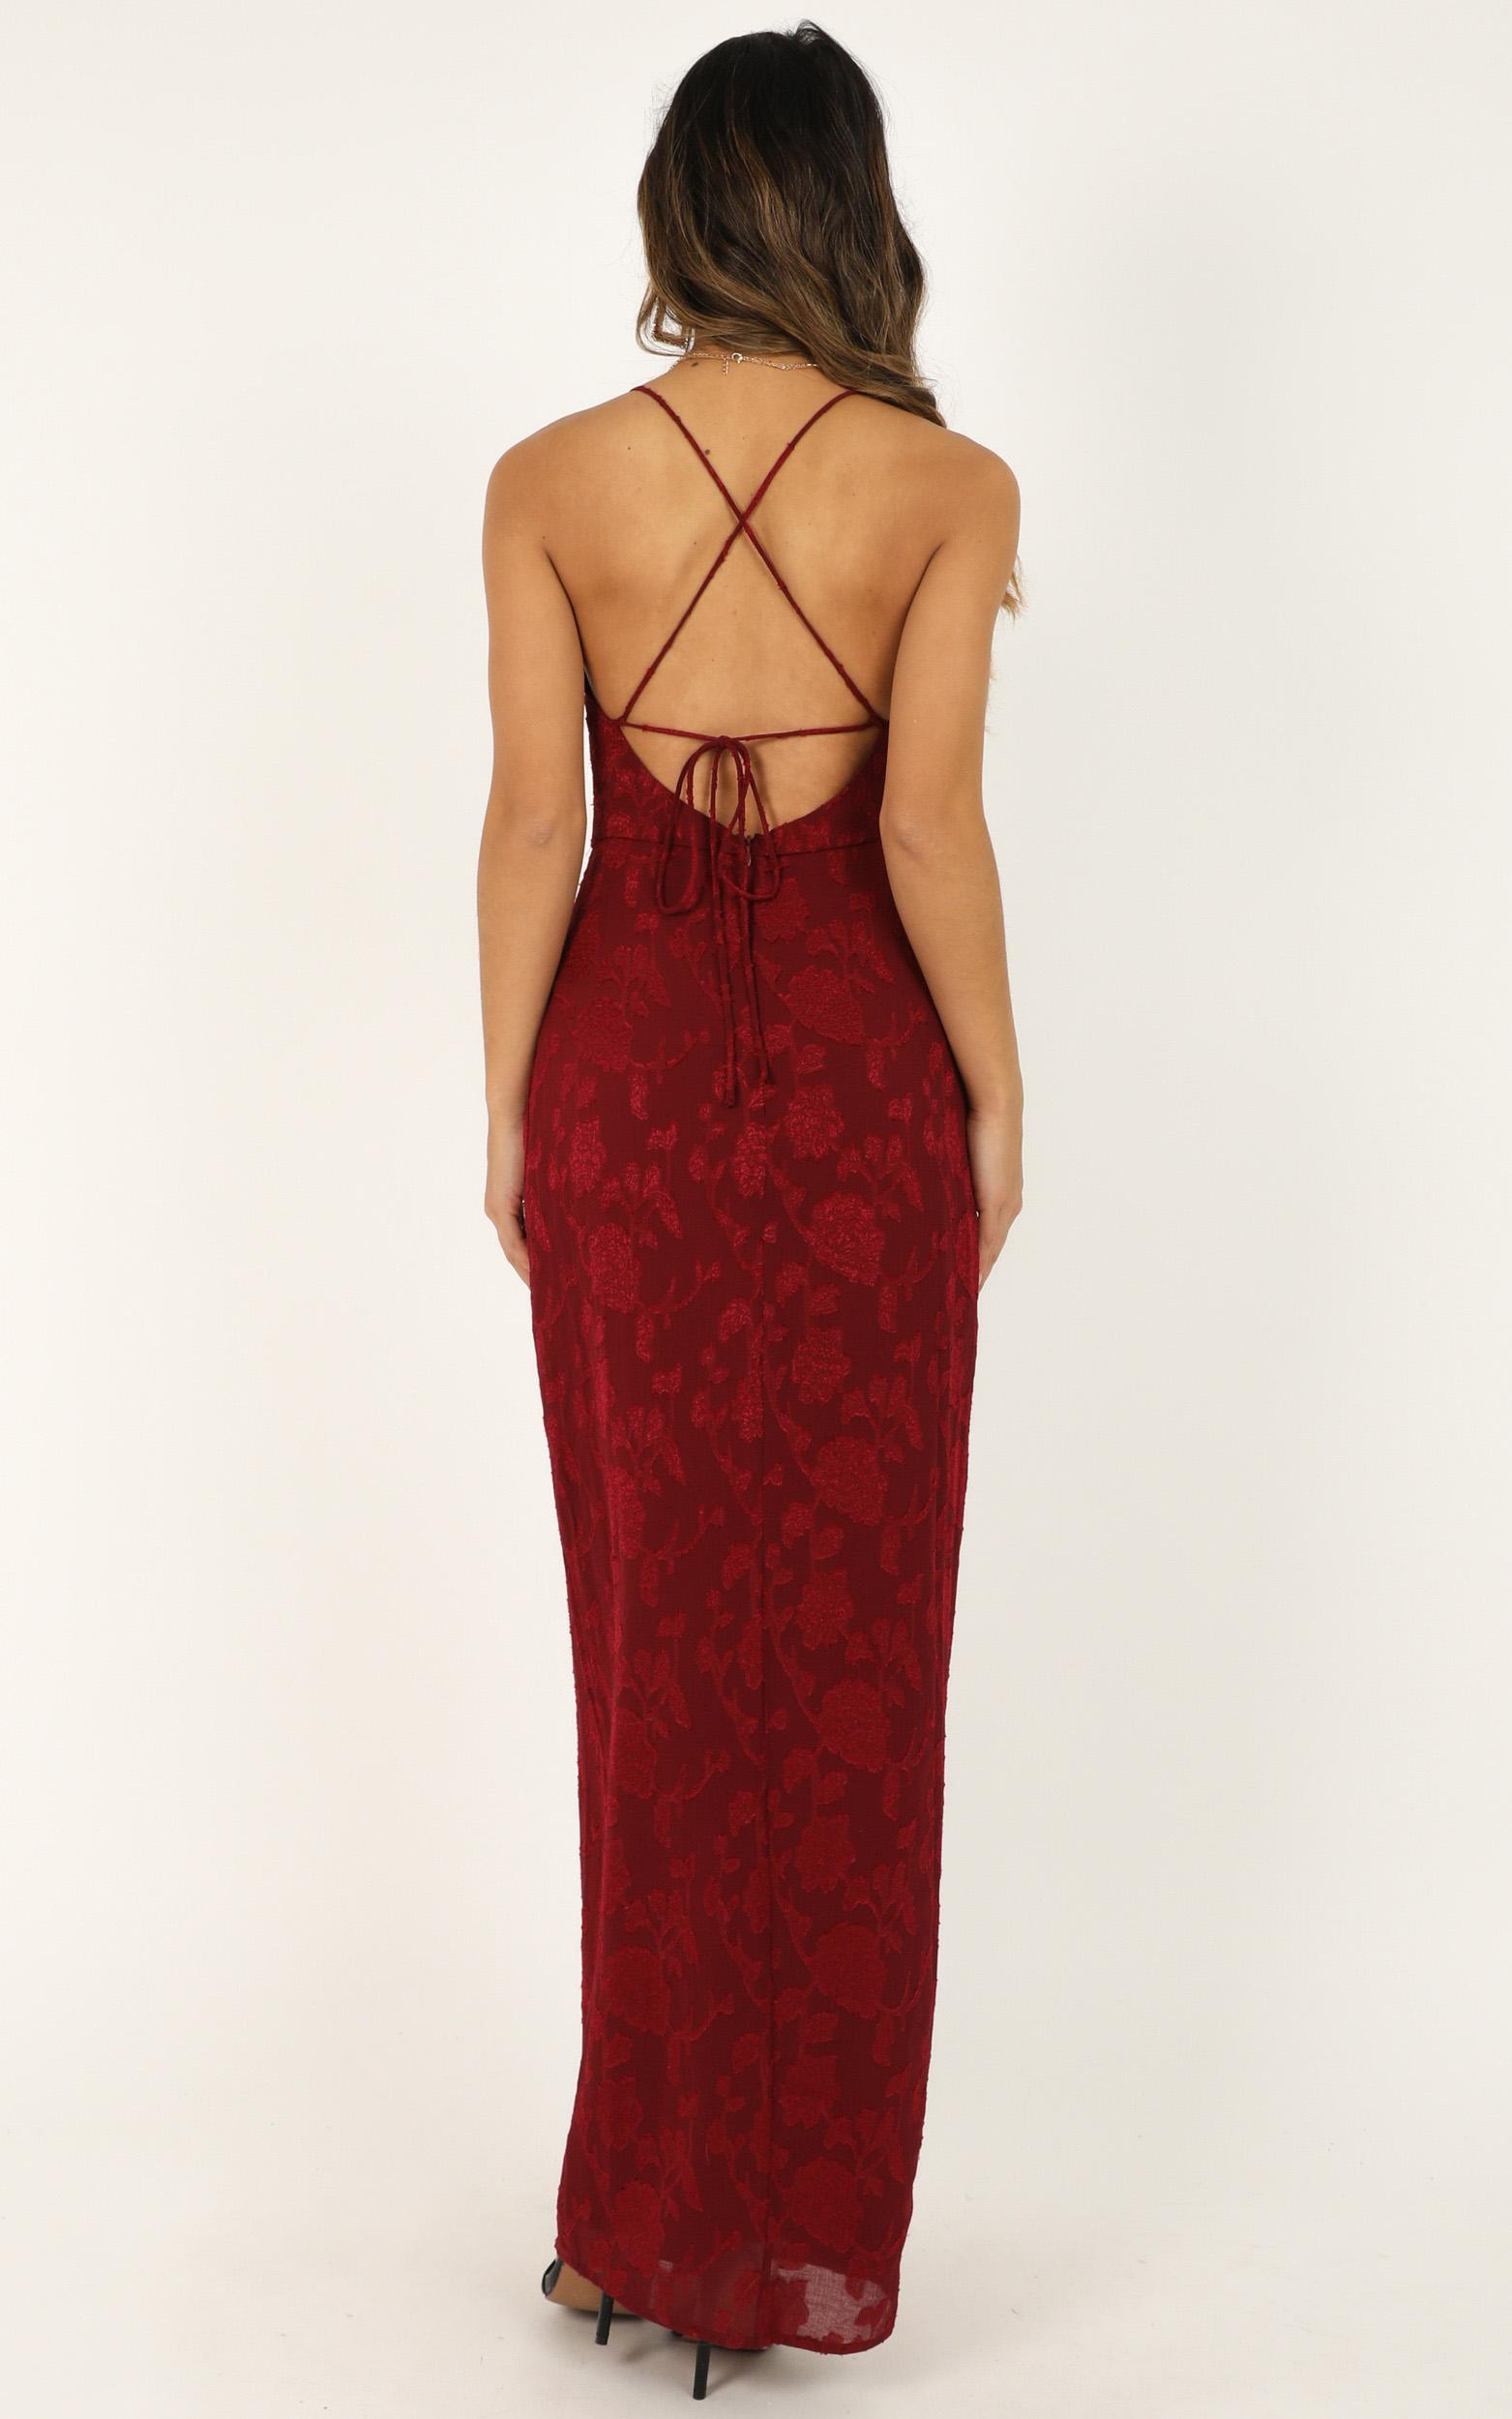 They Crisscrossed Maxi Dress in wine jacquard - 18 (XXXL), Wine, hi-res image number null